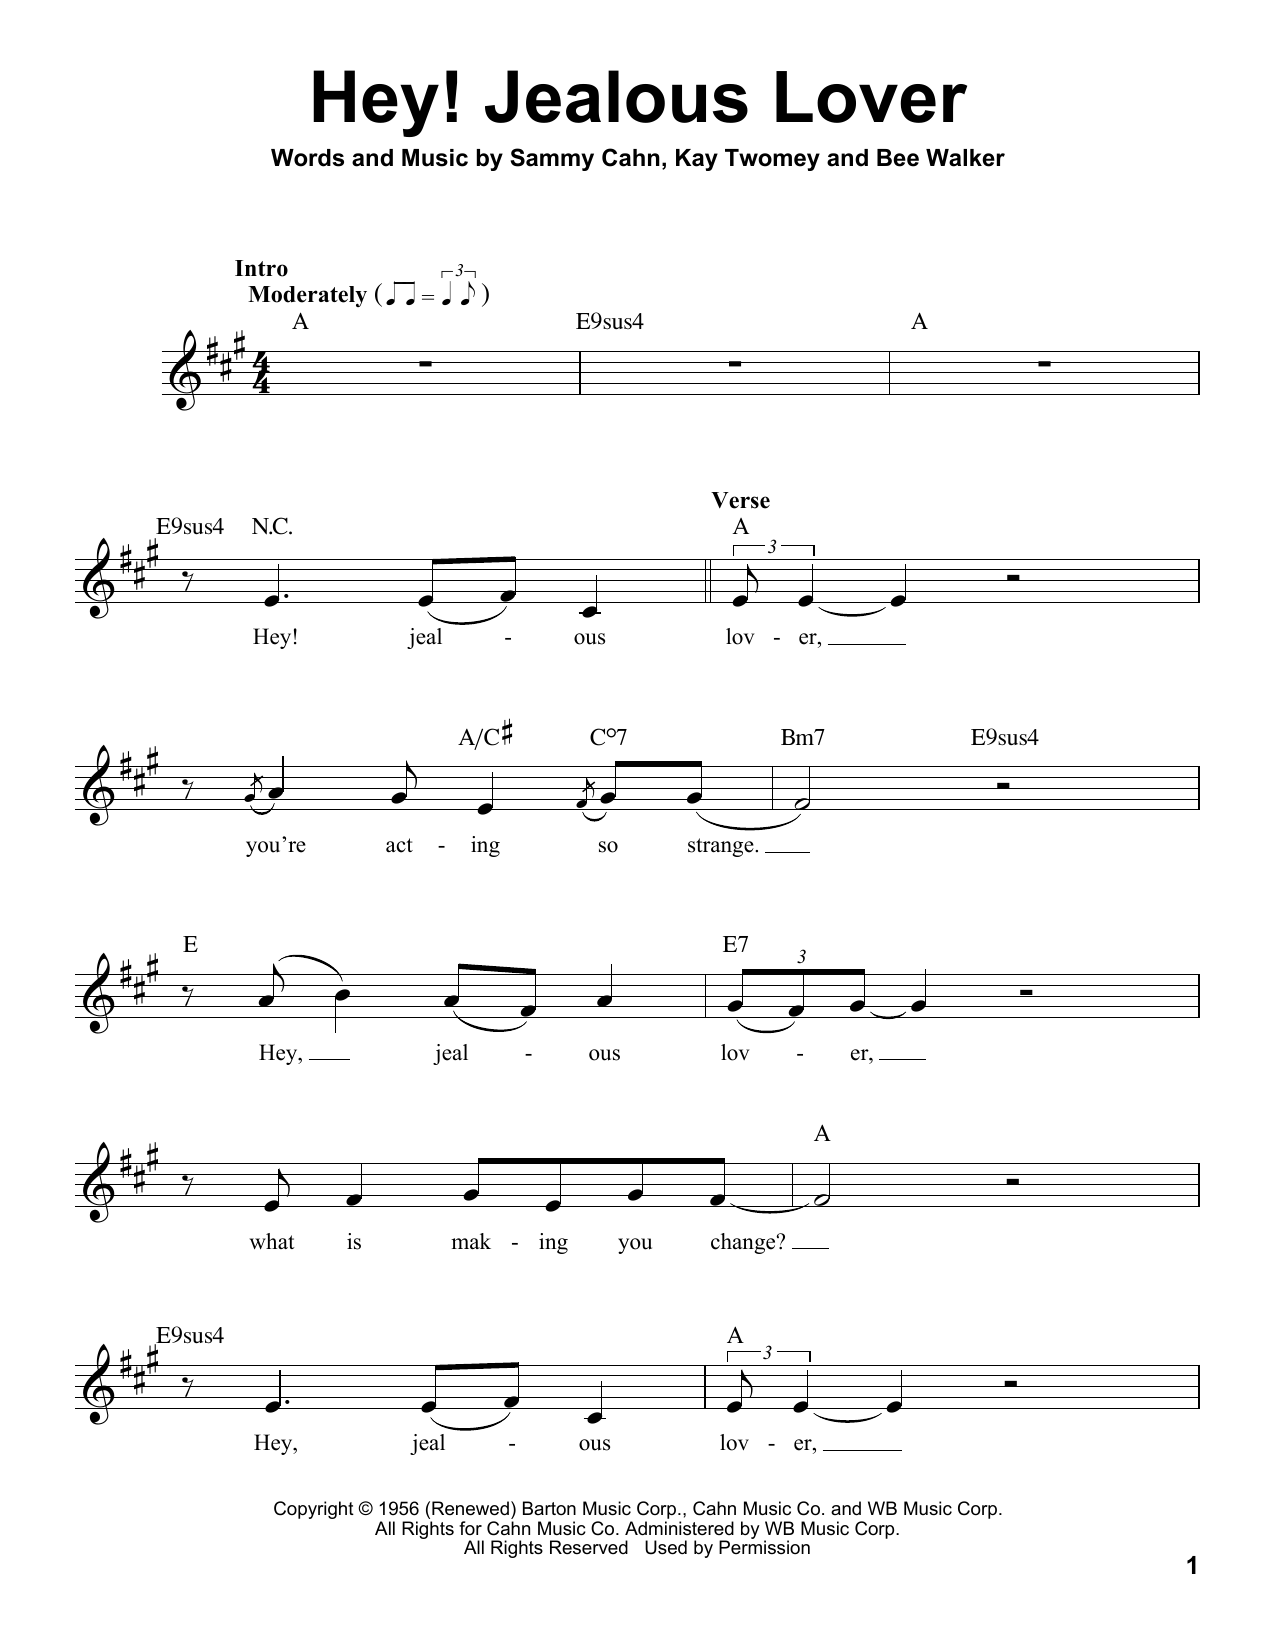 Hey! Jealous Lover Sheet Music